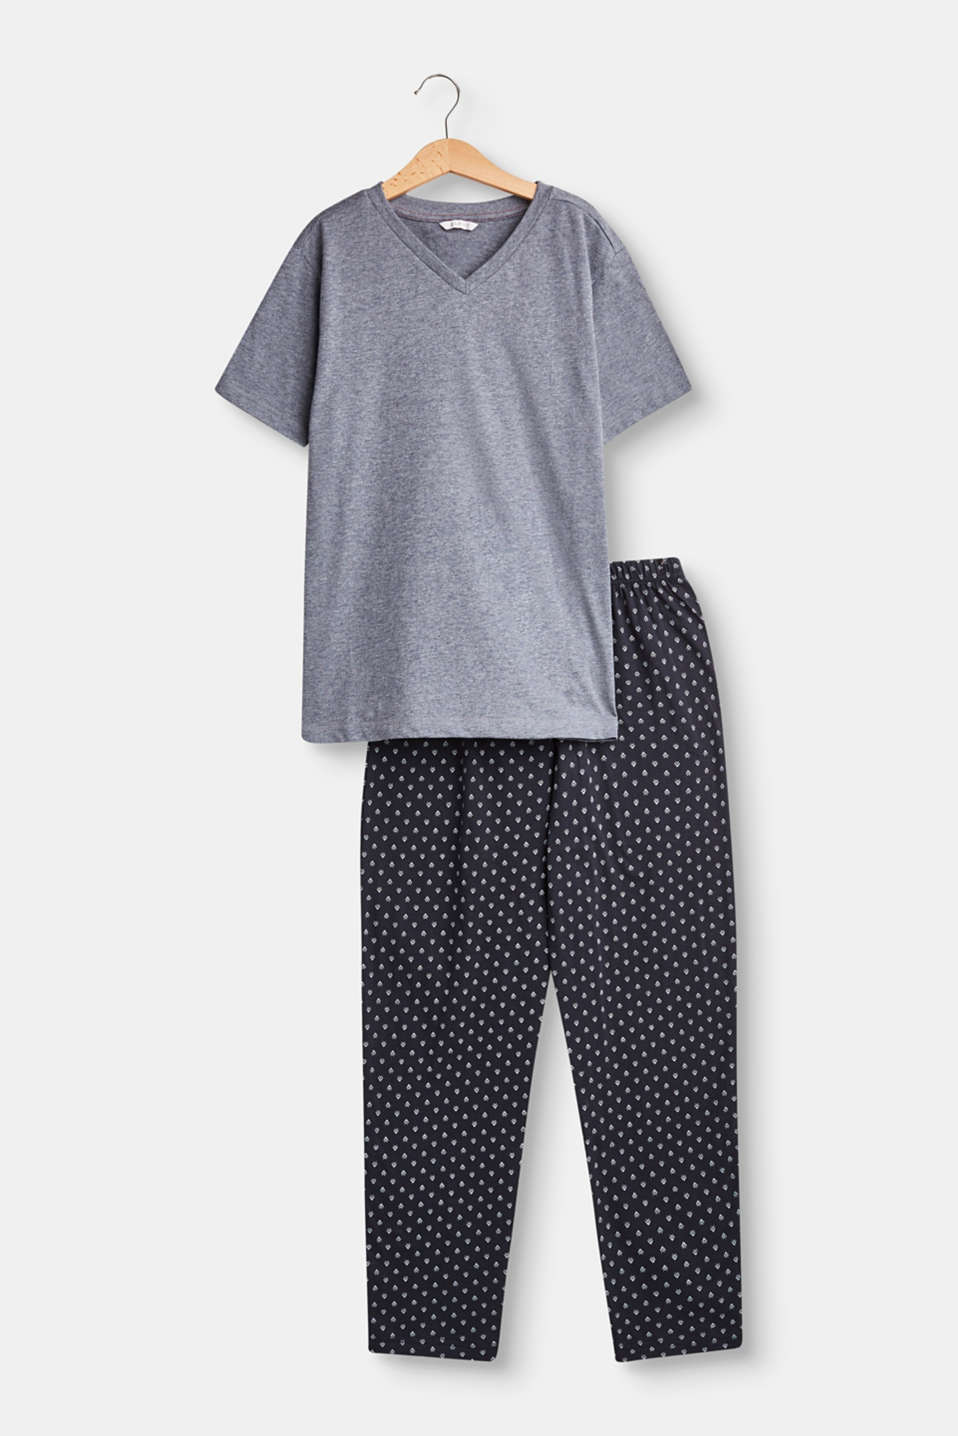 These soft jersey pyjamas with a melange top and all-over printed bottoms are cool and comfortable.